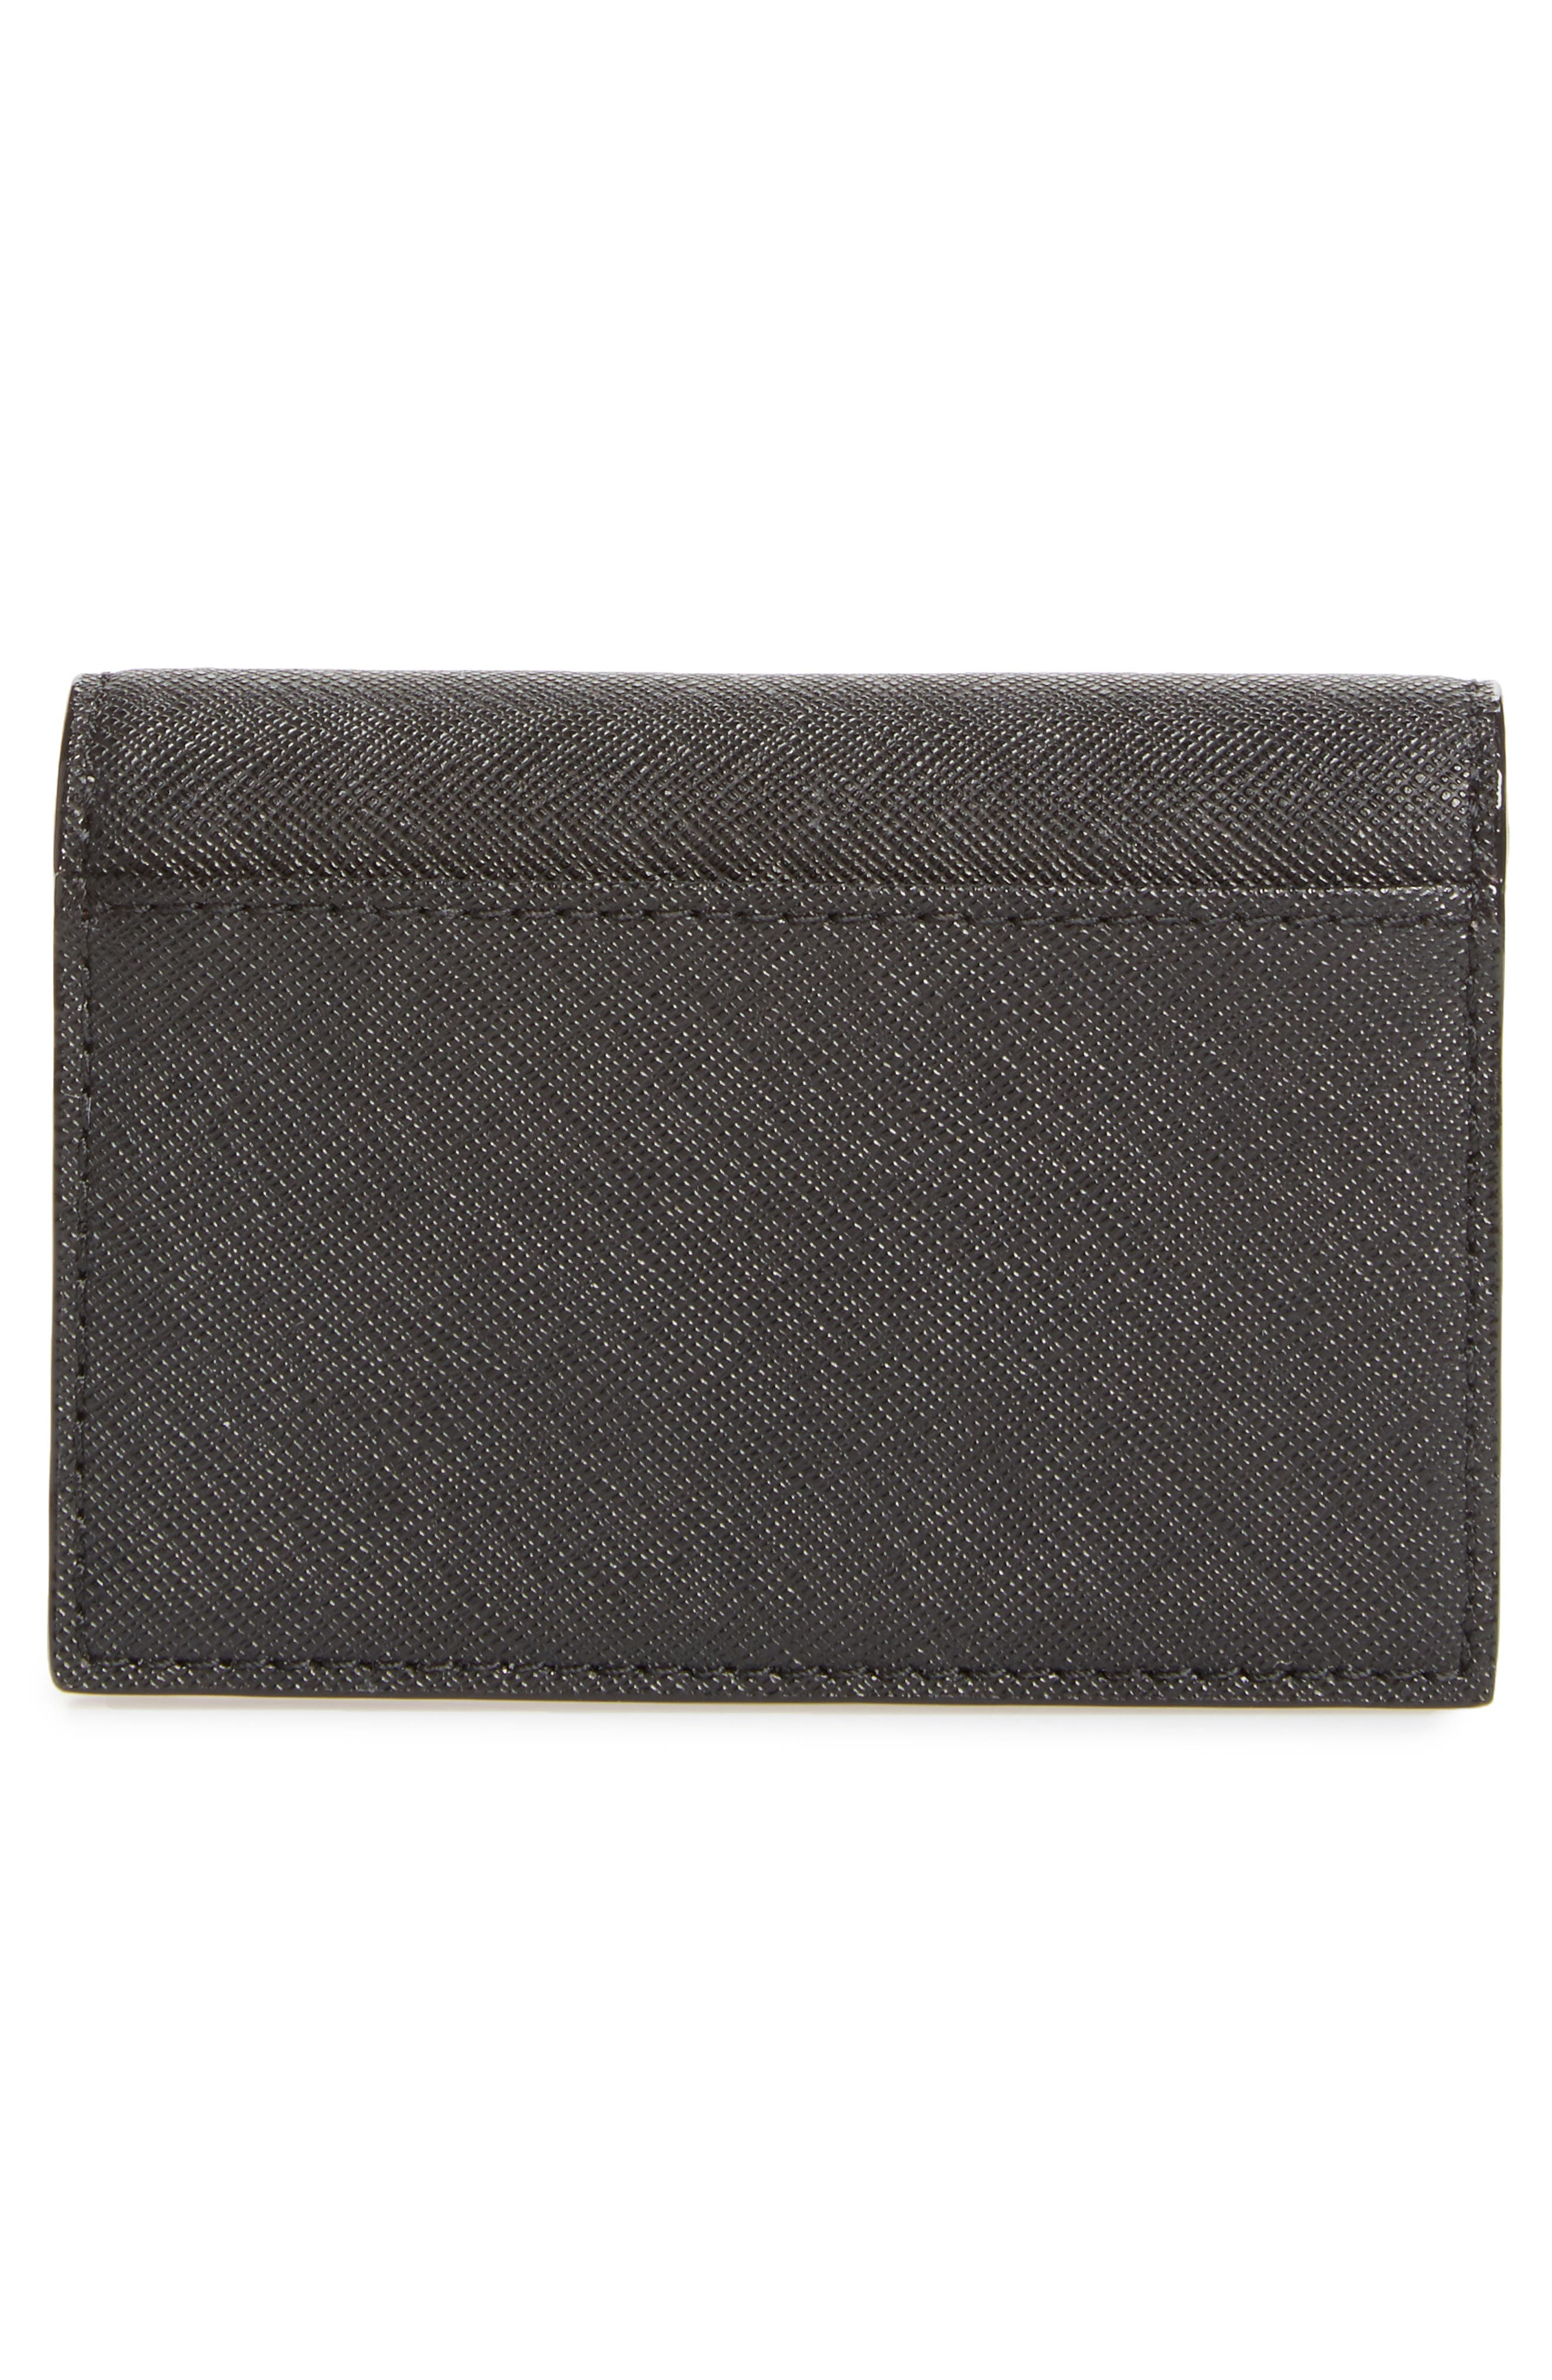 cameron street - annabella accordioned card case,                             Alternate thumbnail 4, color,                             Black/ Warm Vellum